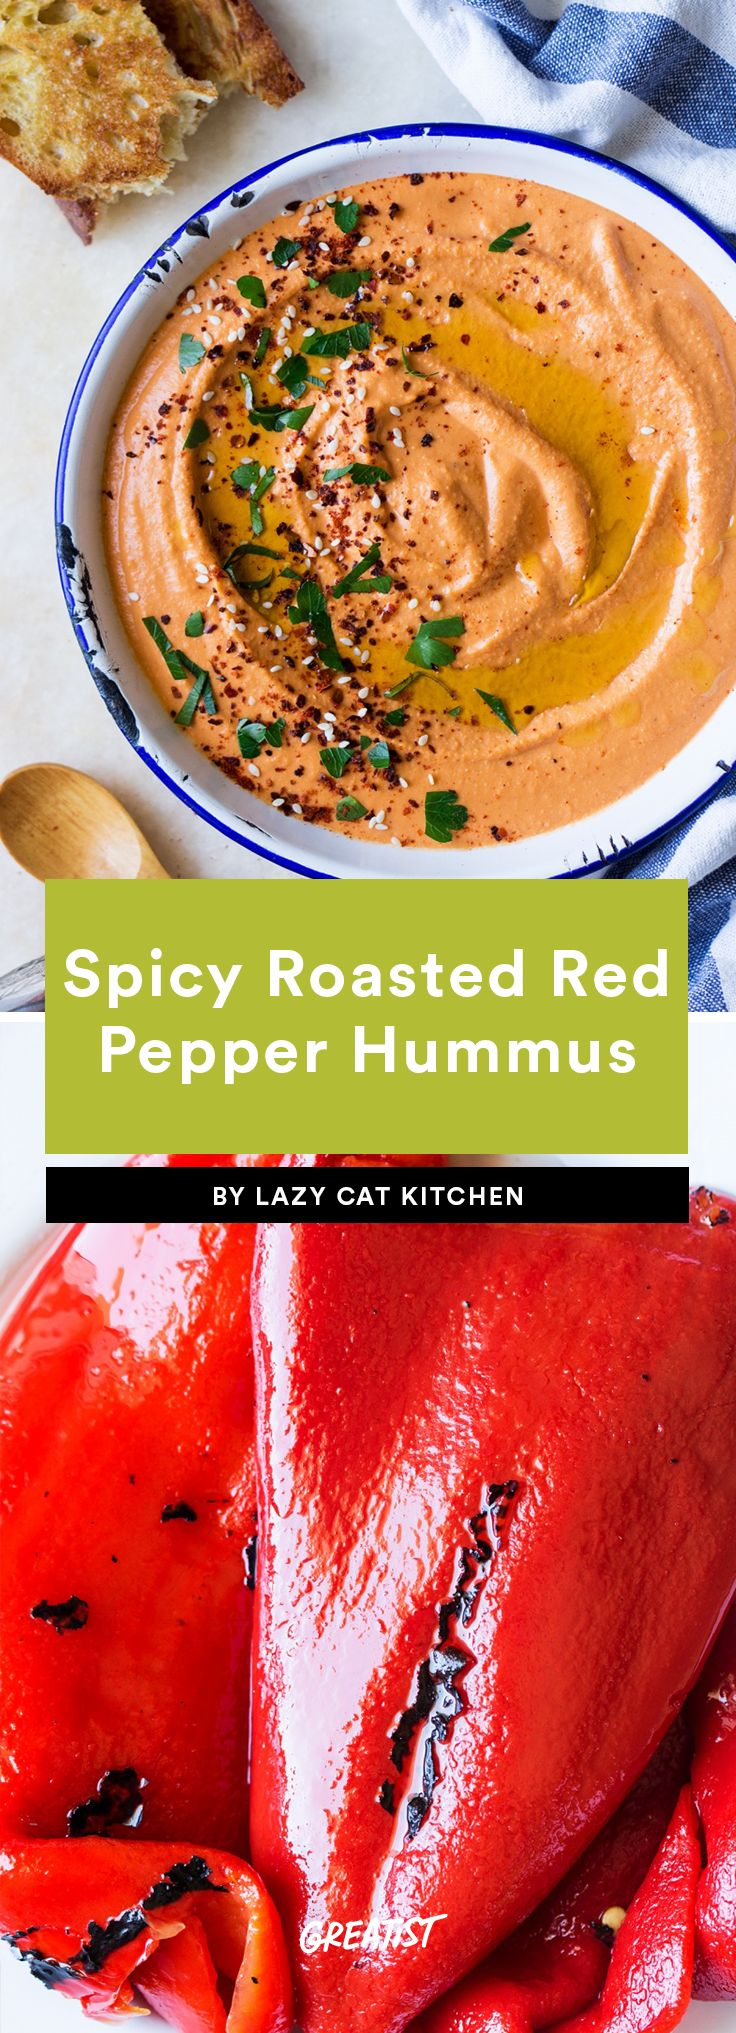 Spicy Roasted Red Pepper Hummus Banner.png